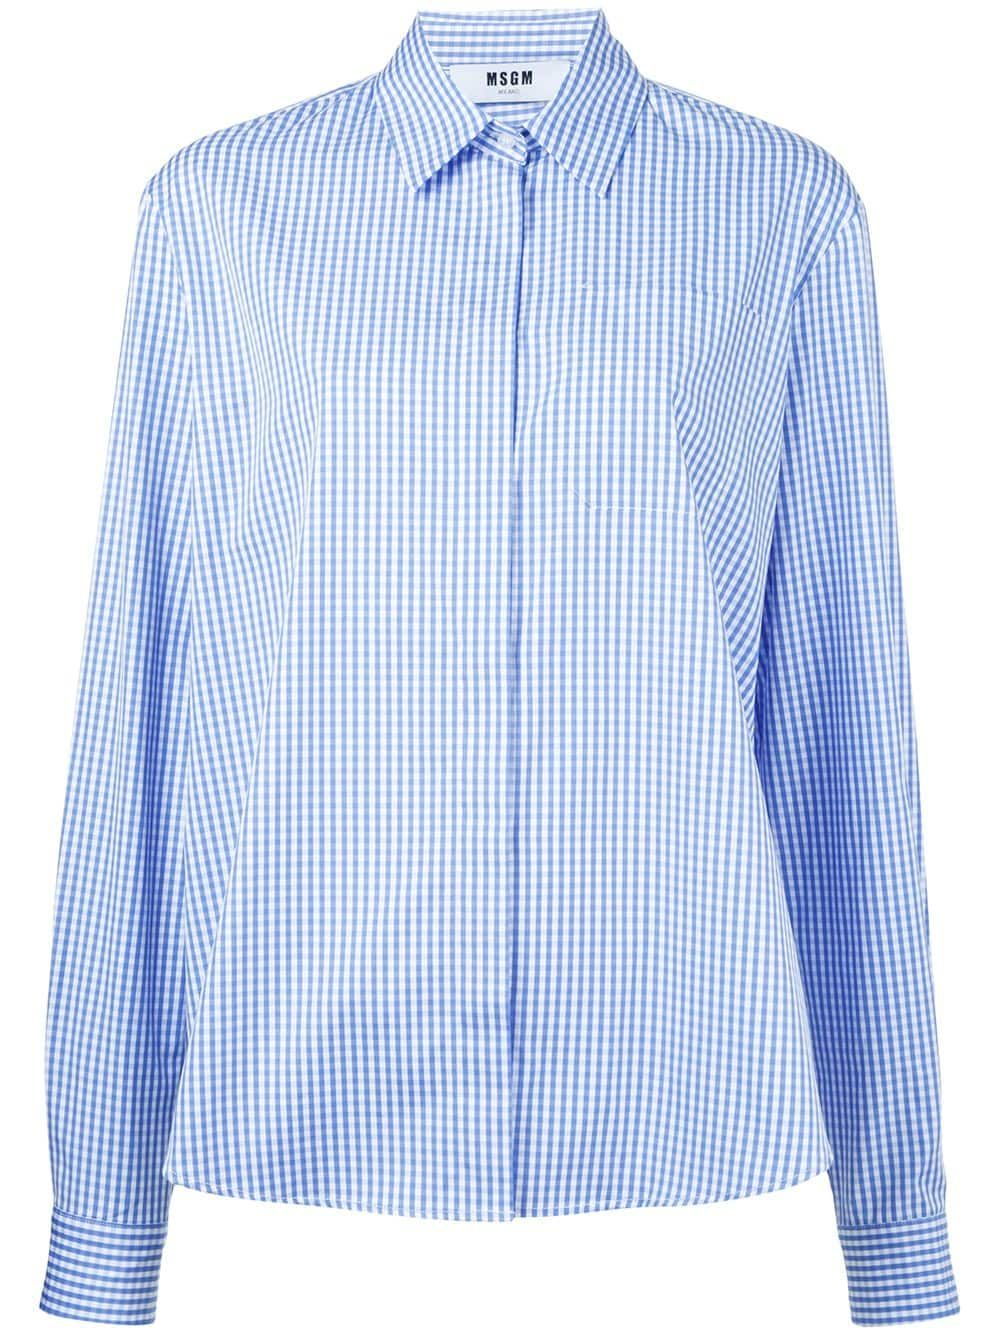 1e22fec8180dcb MSGM gingham check shirt - Blue in 2019 | Products | Blue gingham ...